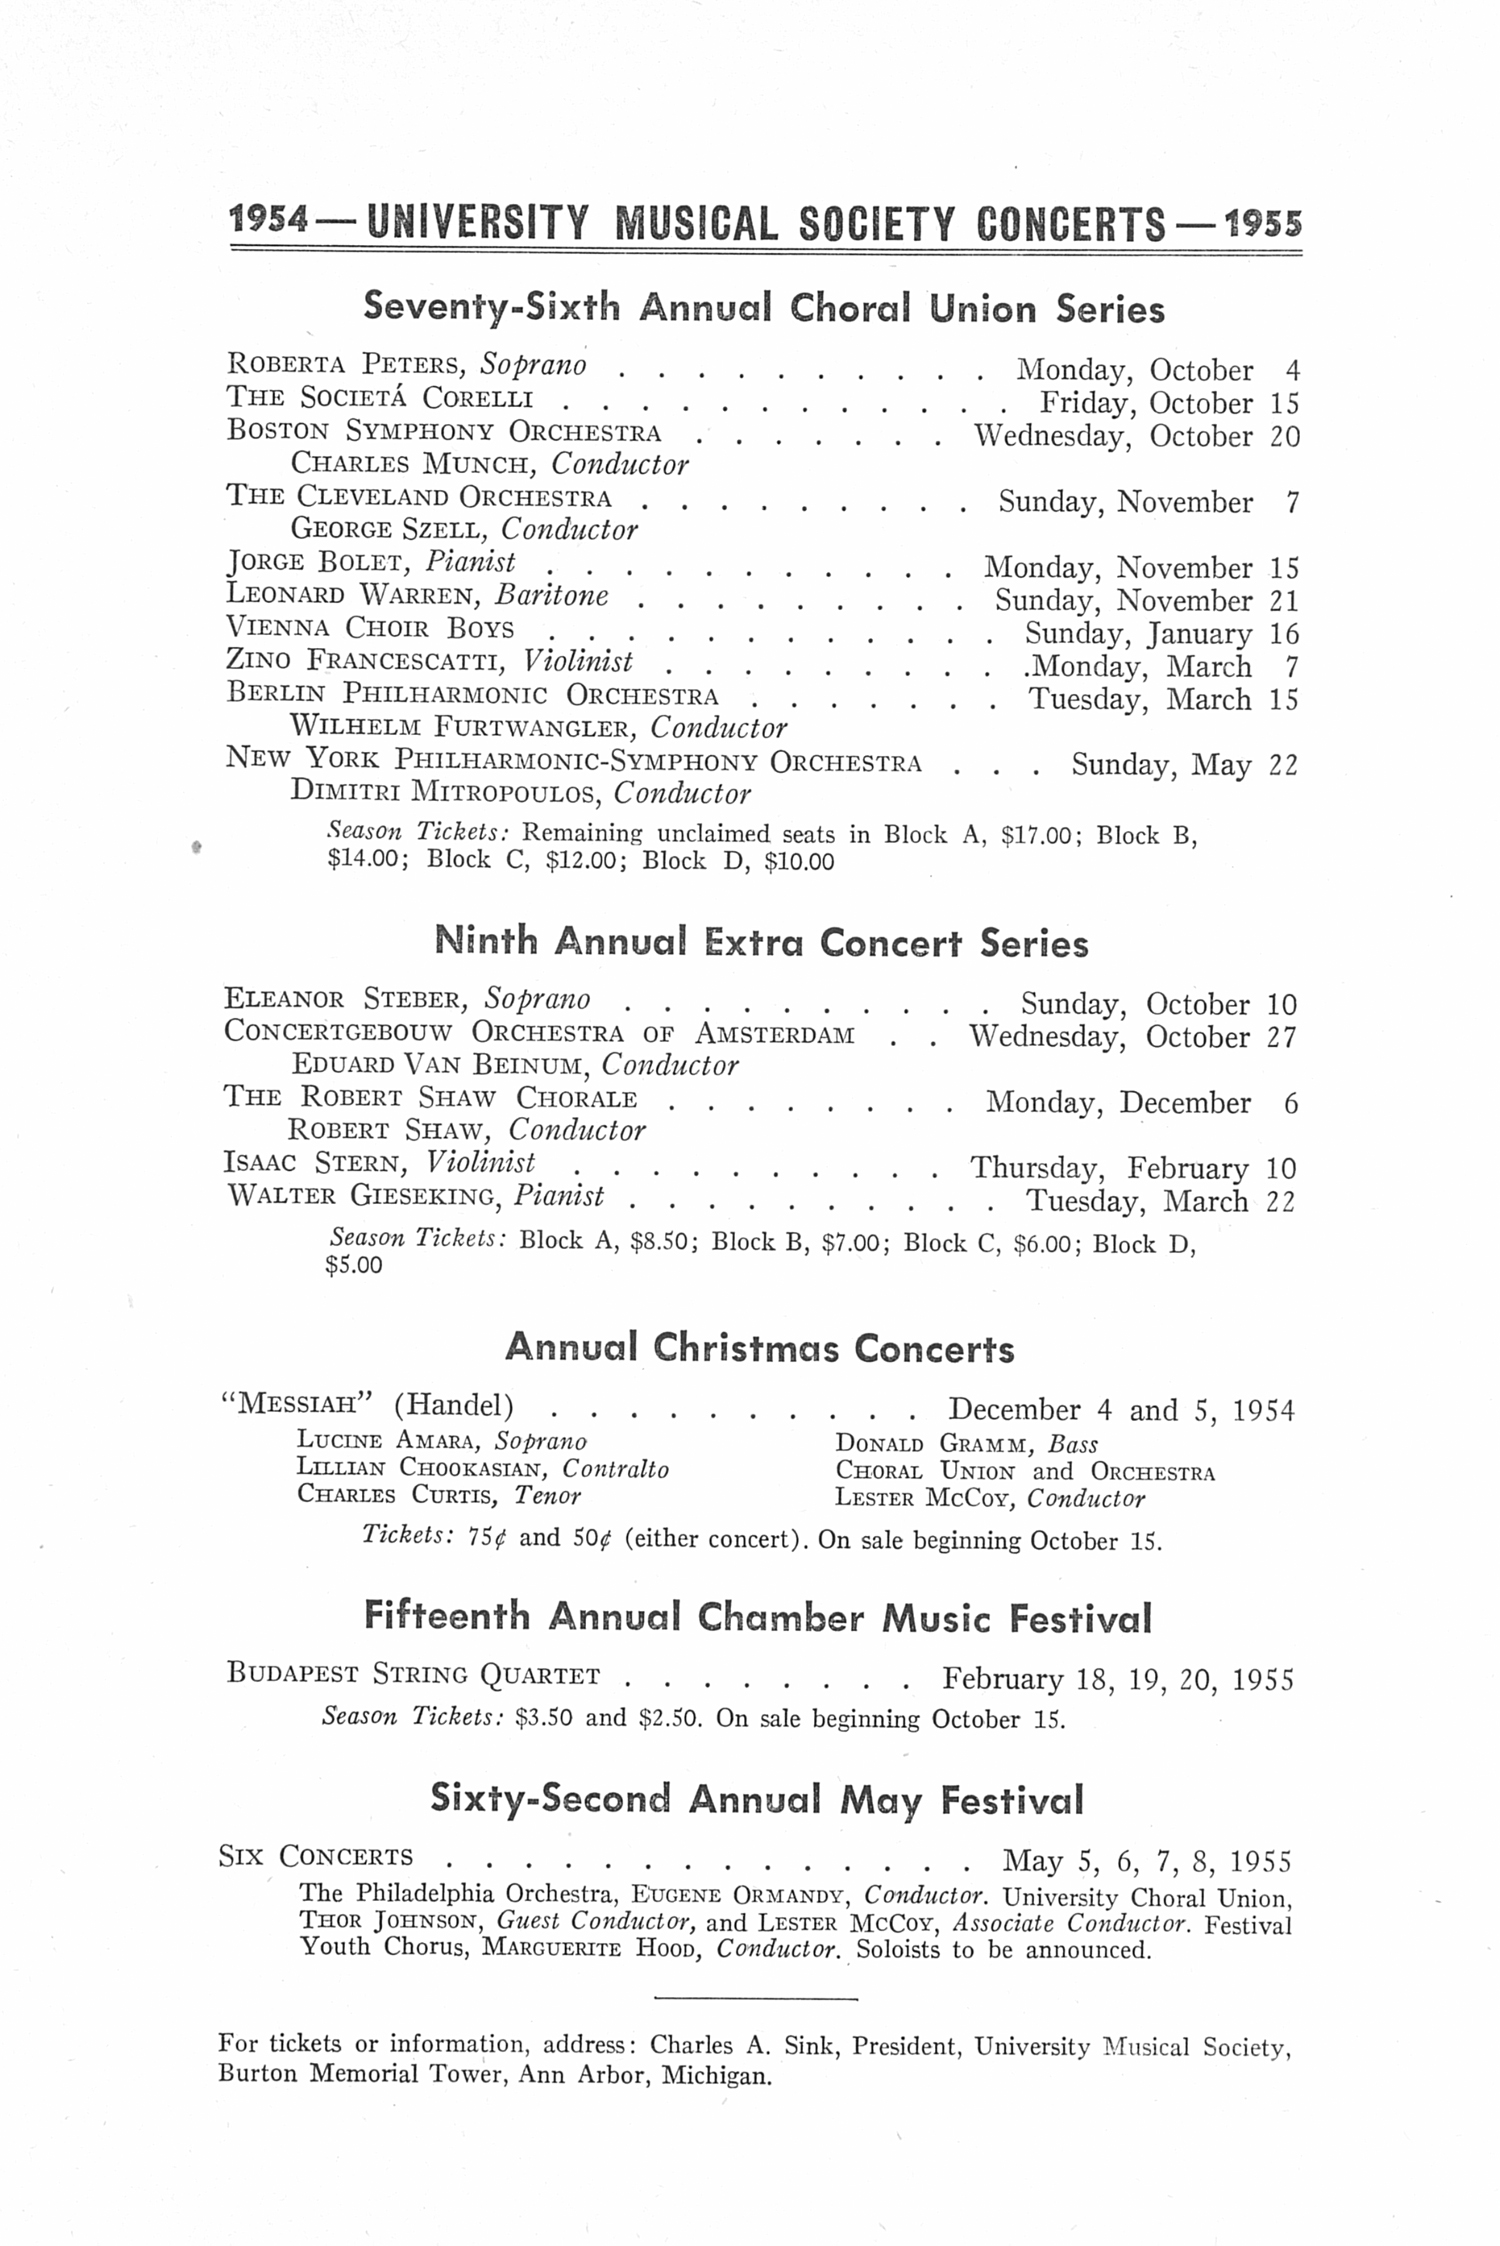 UMS Concert Program, April 30, 1954: Sixty-first Annual May Festival -- The Philadelphia Orchestra image